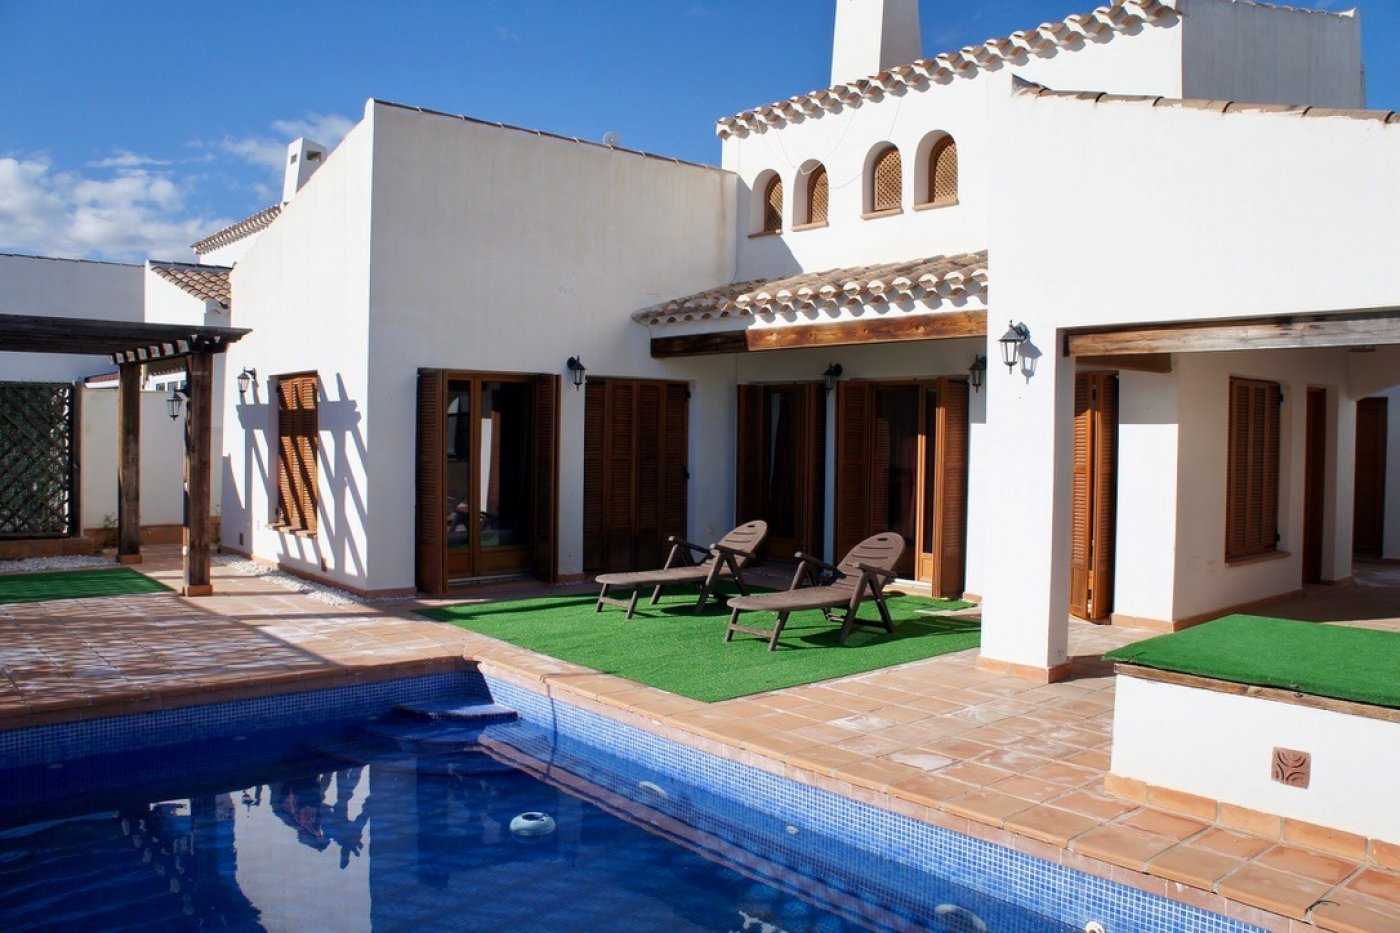 Villa ref 3265-03115 for sale in El Valle Golf Resort Spain - Quality Homes Costa Cálida